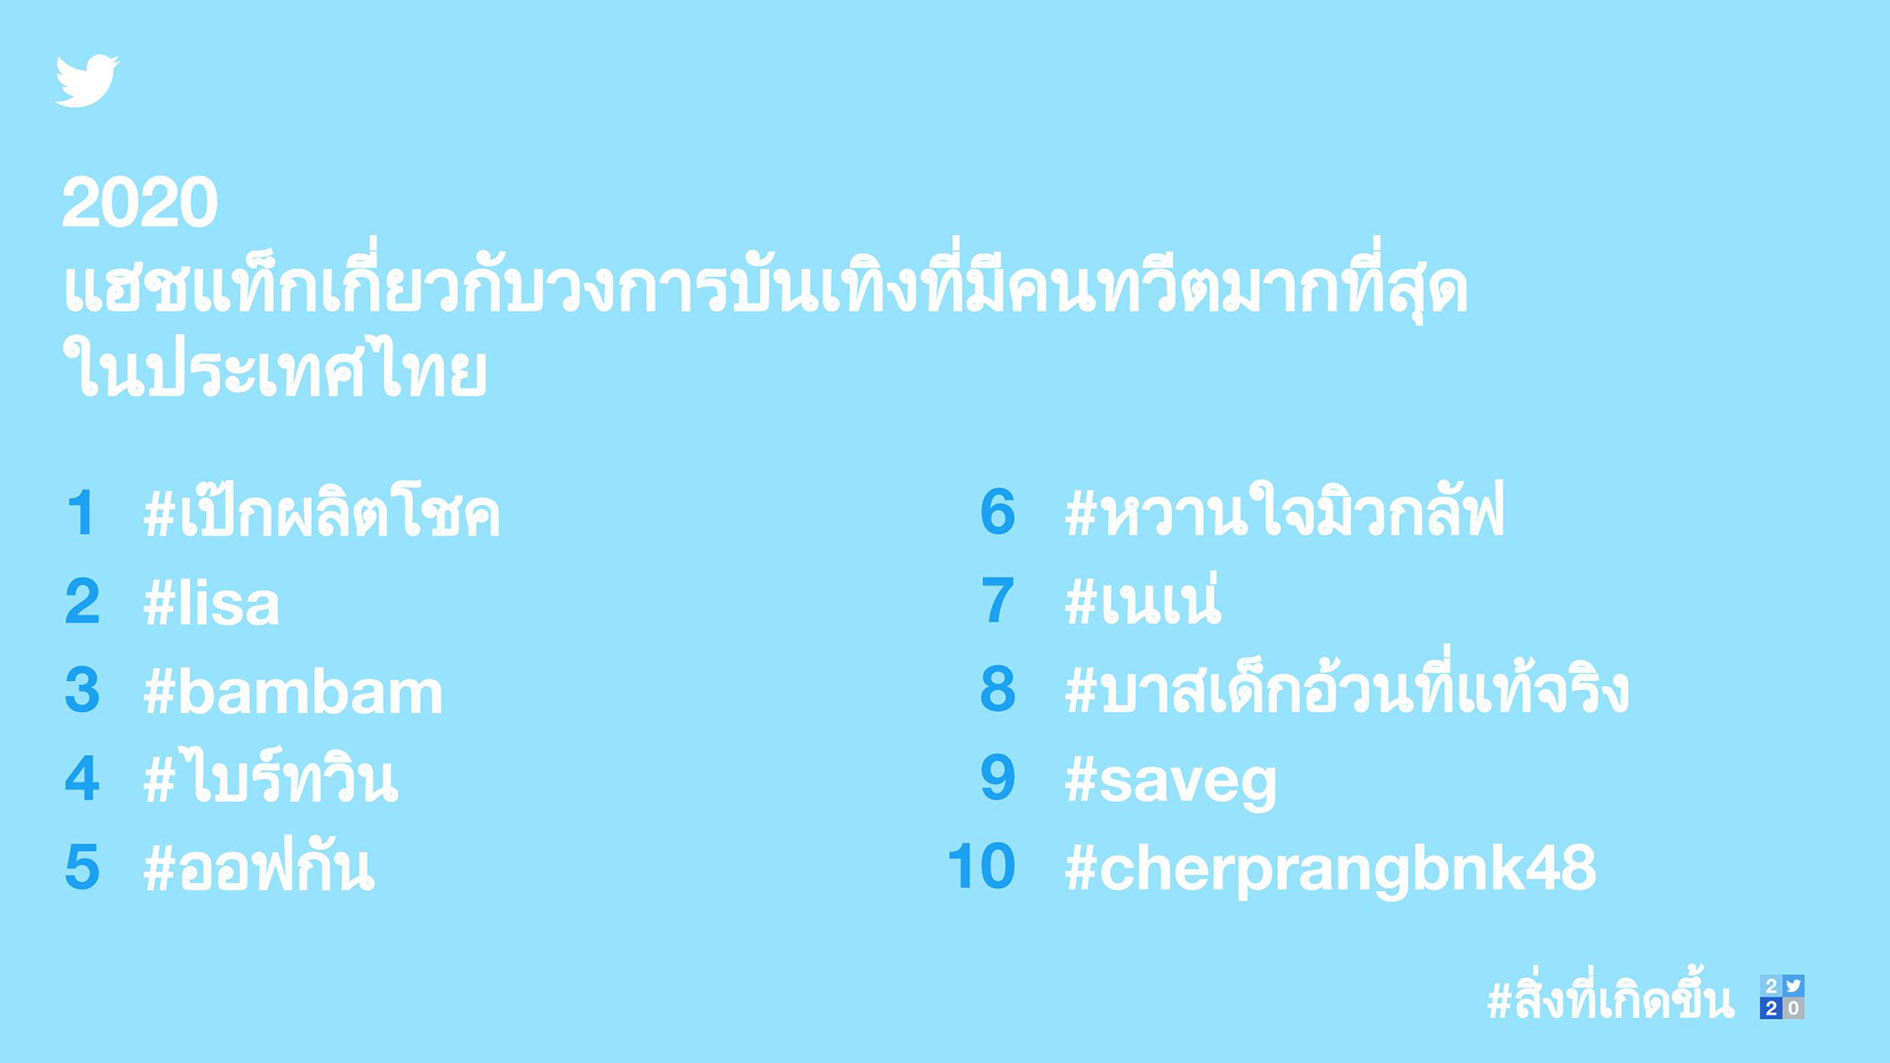 Most Tweeted about entertainment hashtags in Thailand (THA)_m.jpg